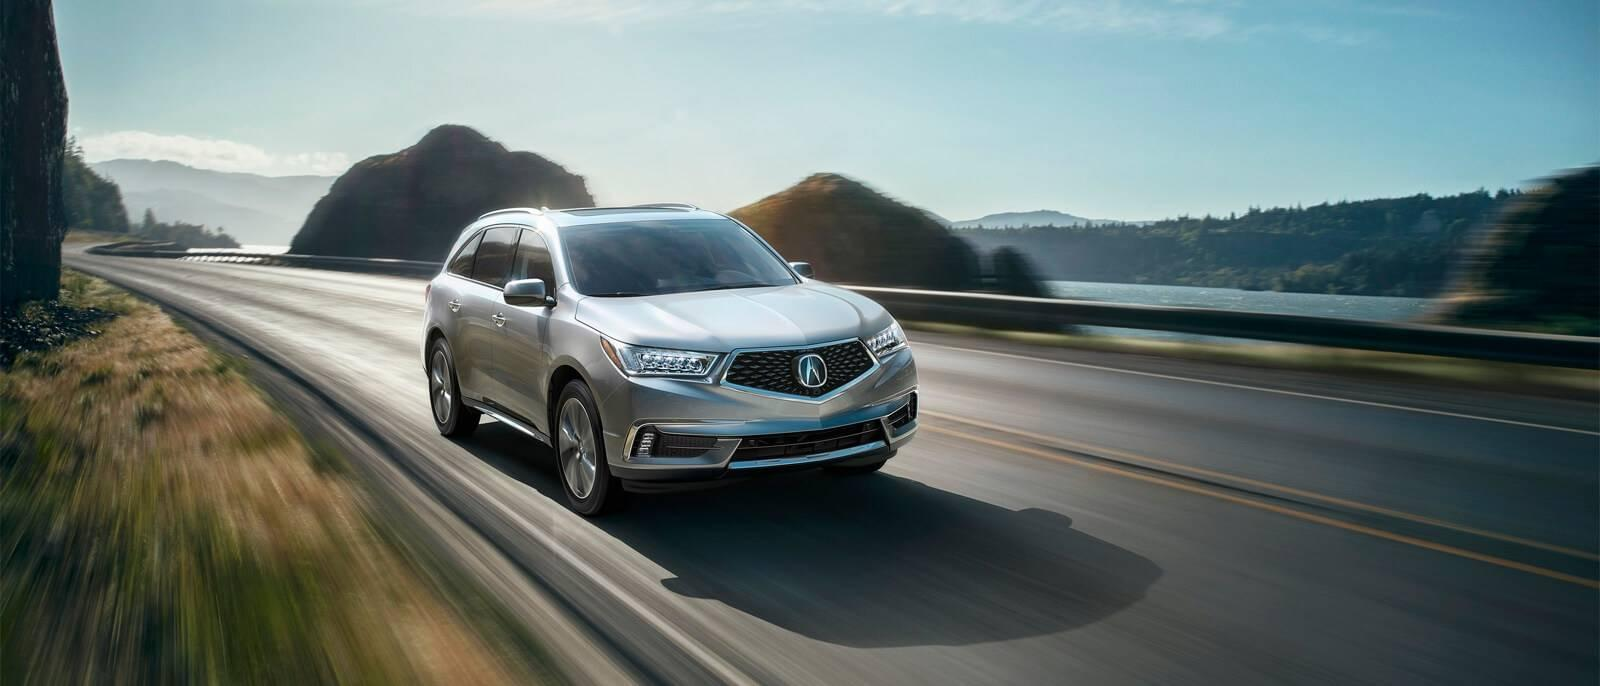 2017 Acura MDX light exterior model